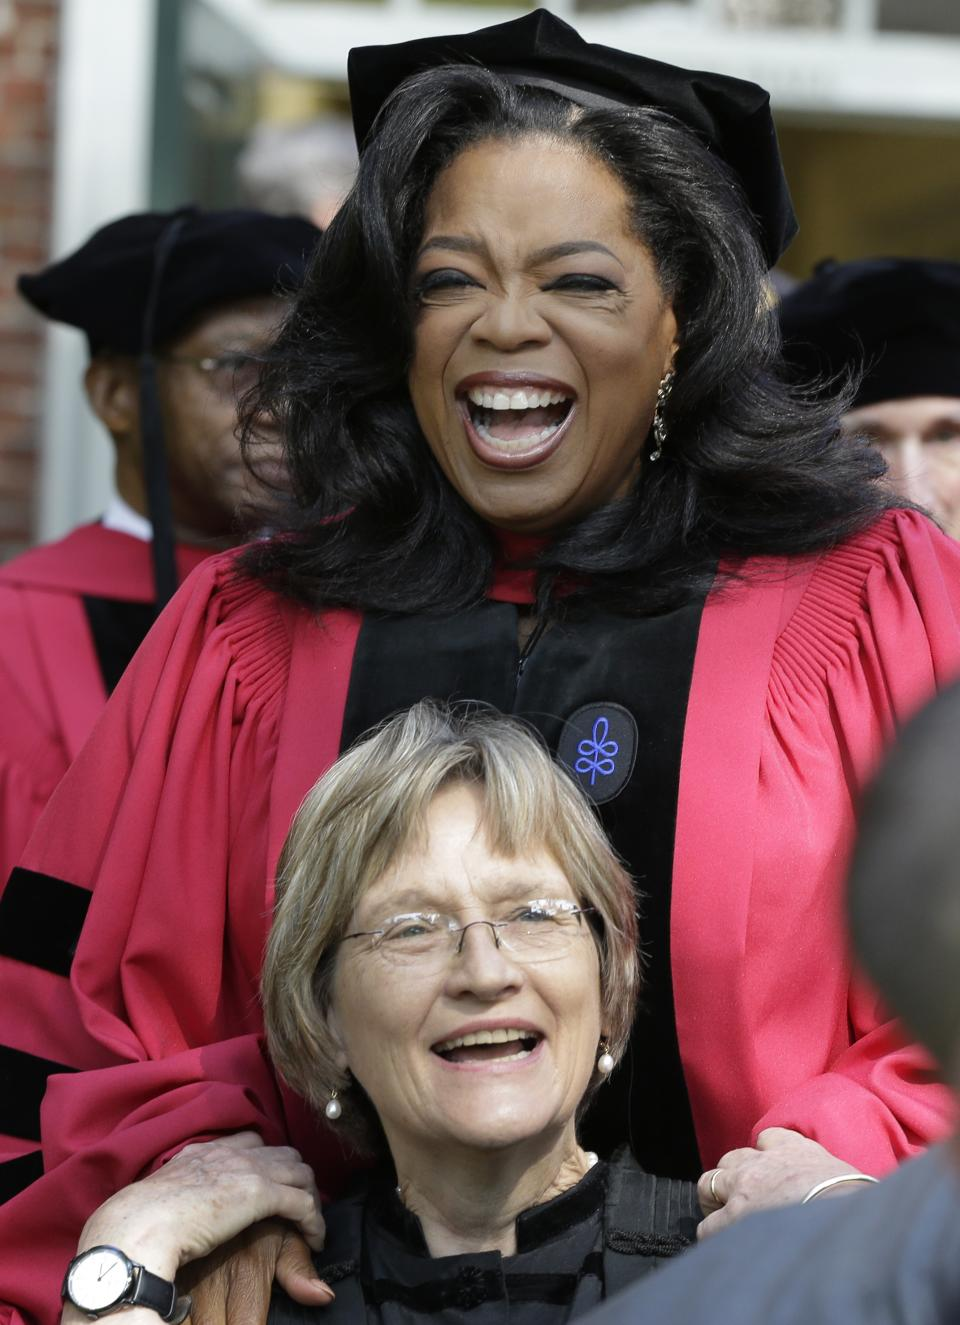 Oprah Winfrey laughs with Harvard University President Drew Faust prior to receiving an honorary degree from Harvard during commencement ceremonies in Cambridge, Mass., Thursday, May 30, 2013. (AP Photo/Elise Amendola)